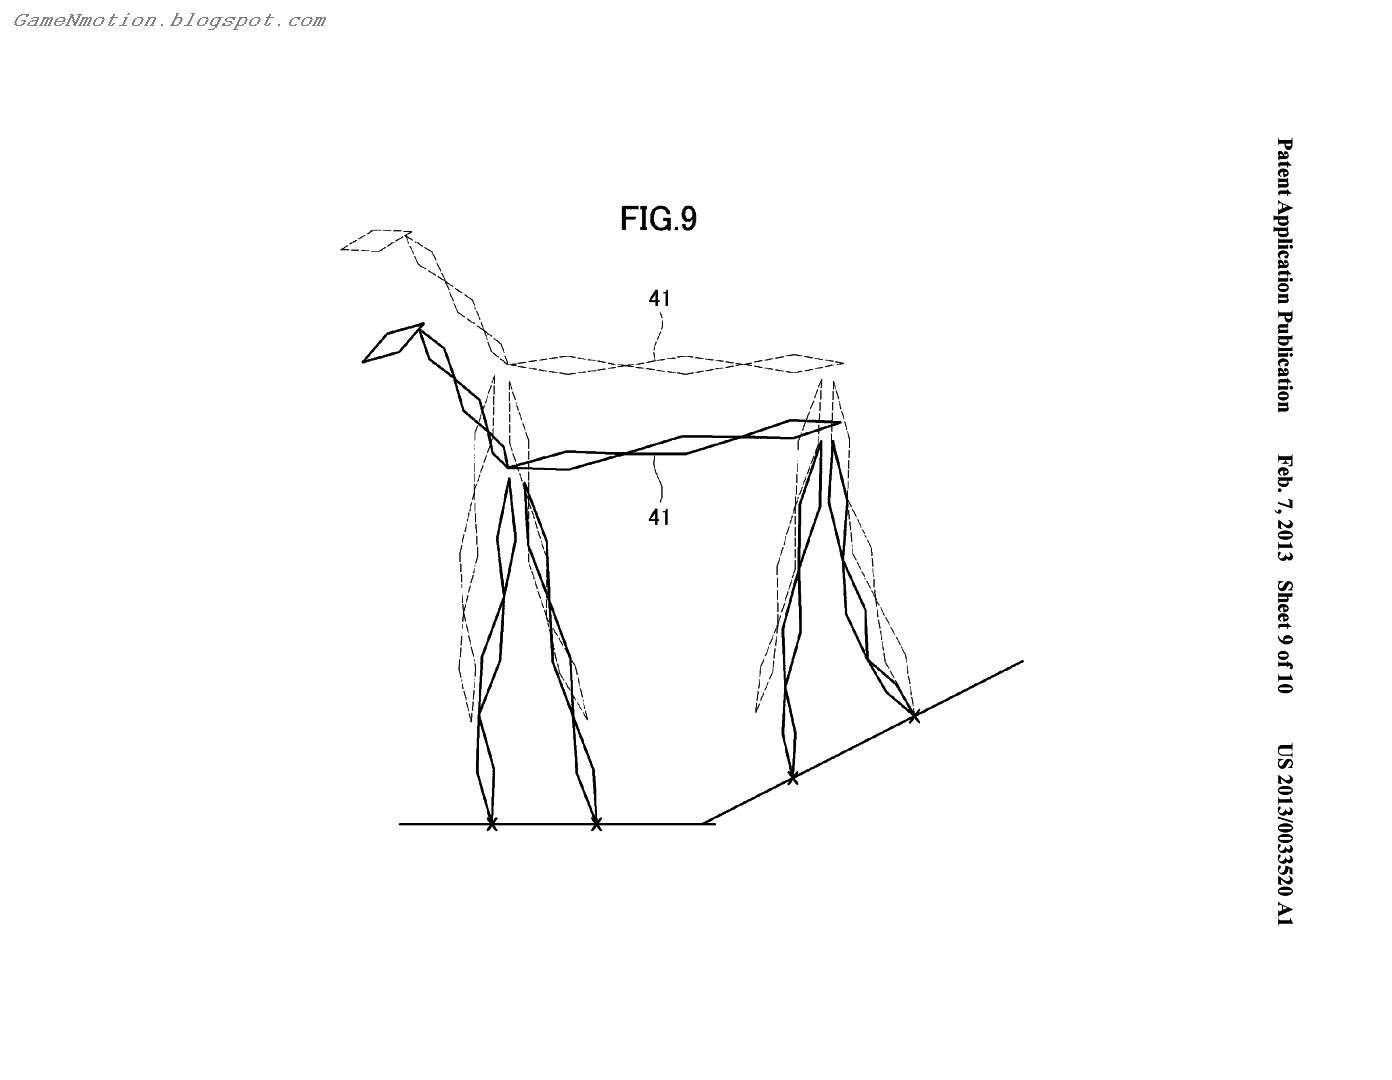 Game N Motion Playstation 4 Dual Playstation Eye Hd Kinect Like Full Body Tracking Patent